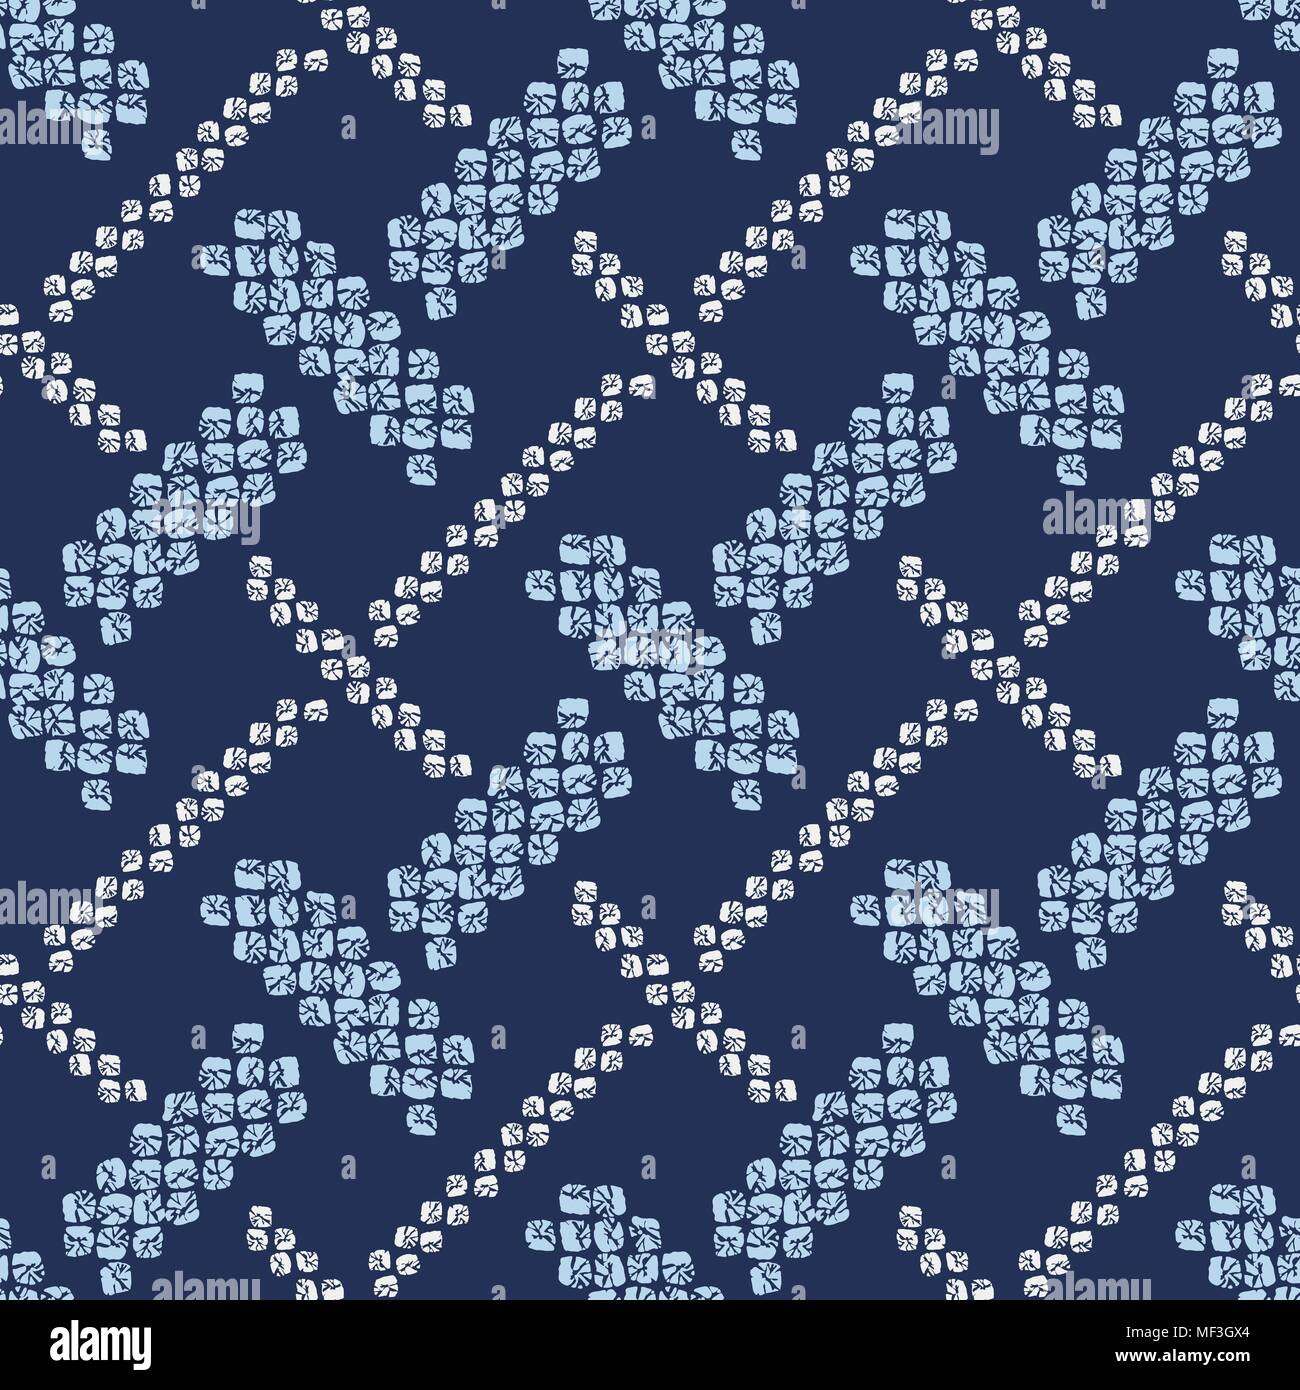 Shibori ornament. Weaving motif. Asian seamless pattern. Dark indigo background. Classic japanese dyeing technique. For wallpaper, web page background - Stock Vector